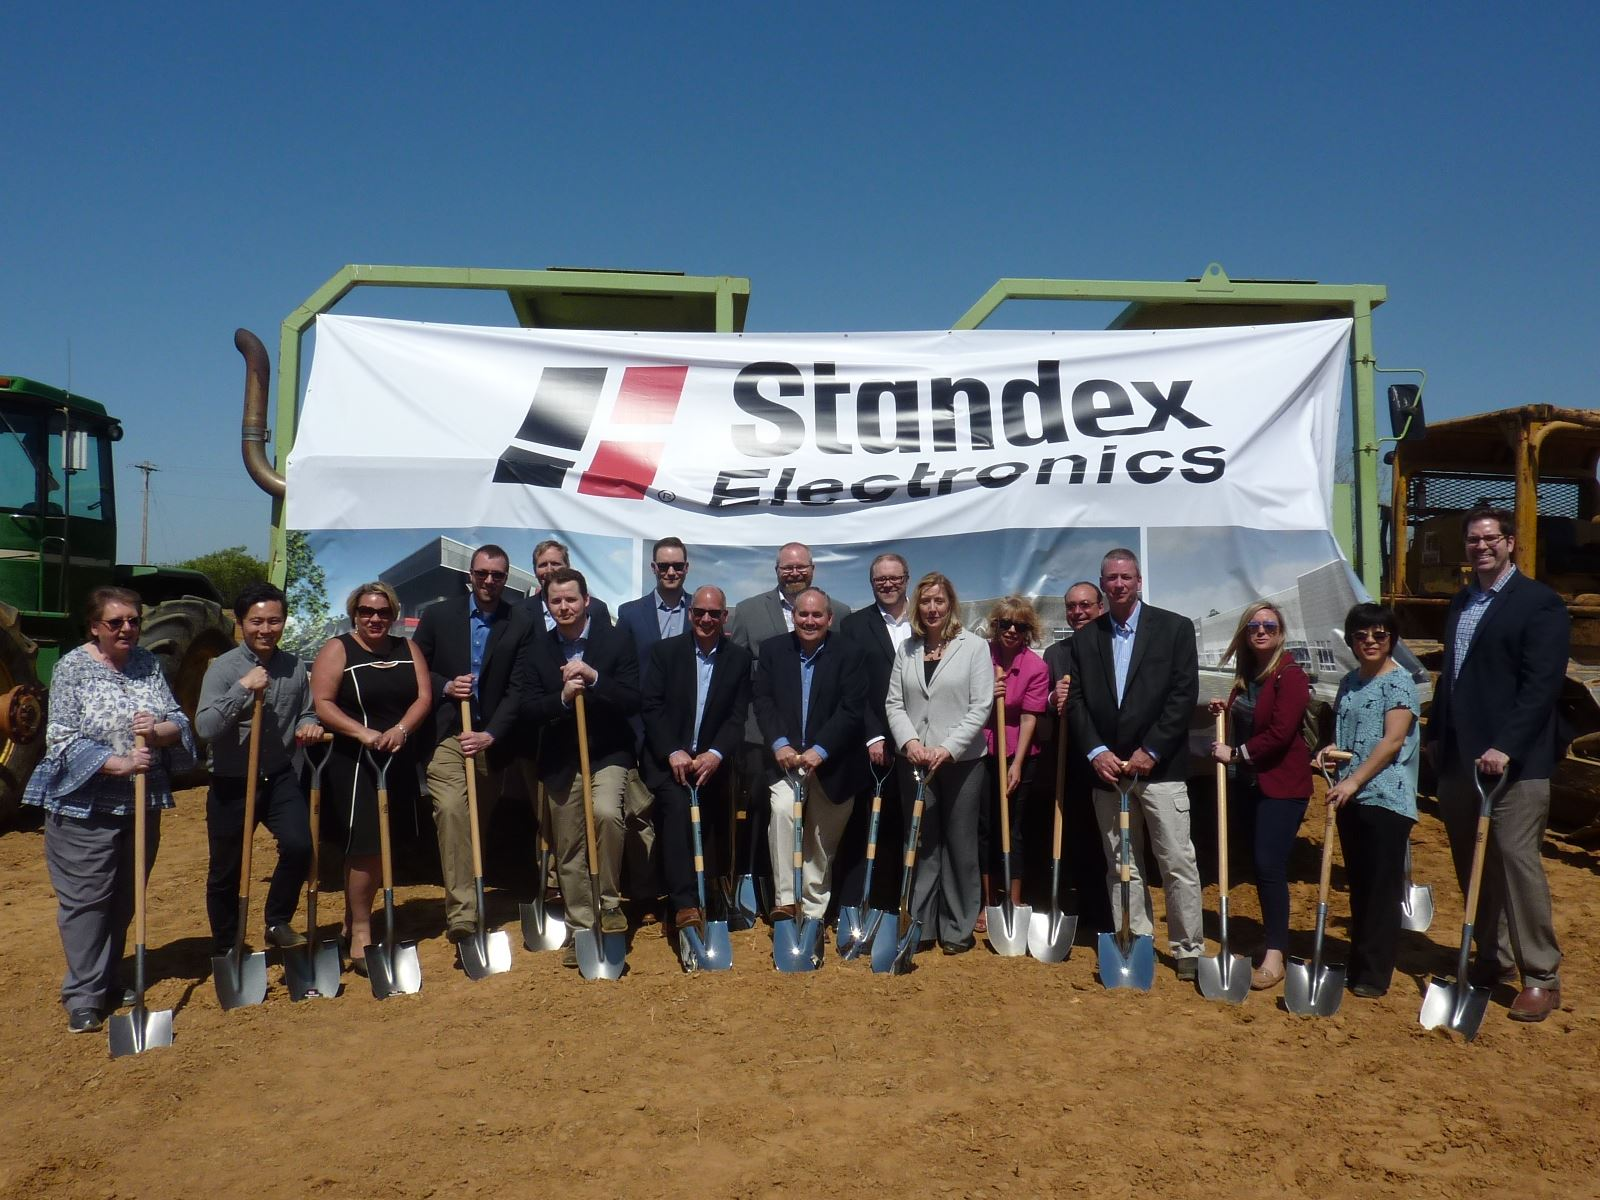 Standex Electronics Moving to Fairfield   Fairfield, OH